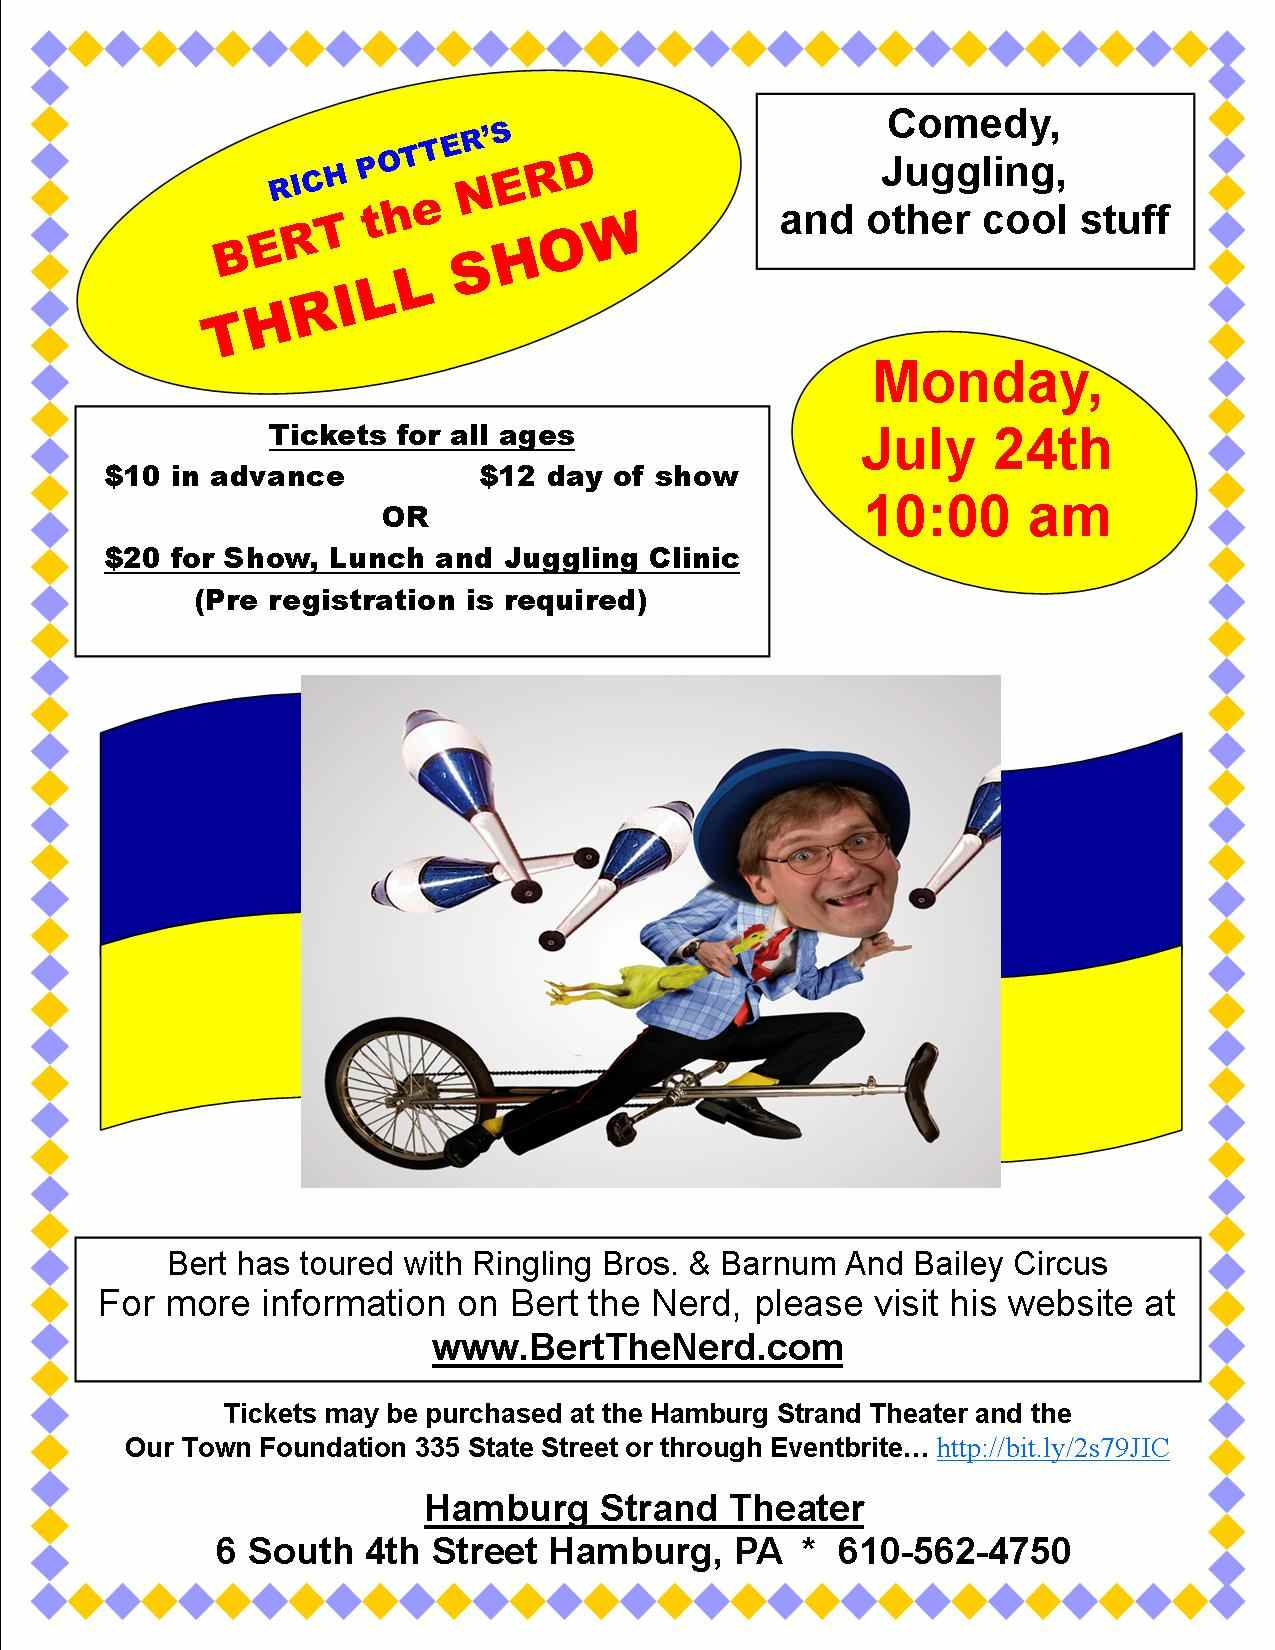 BERT THE NERD THRILL SHOW